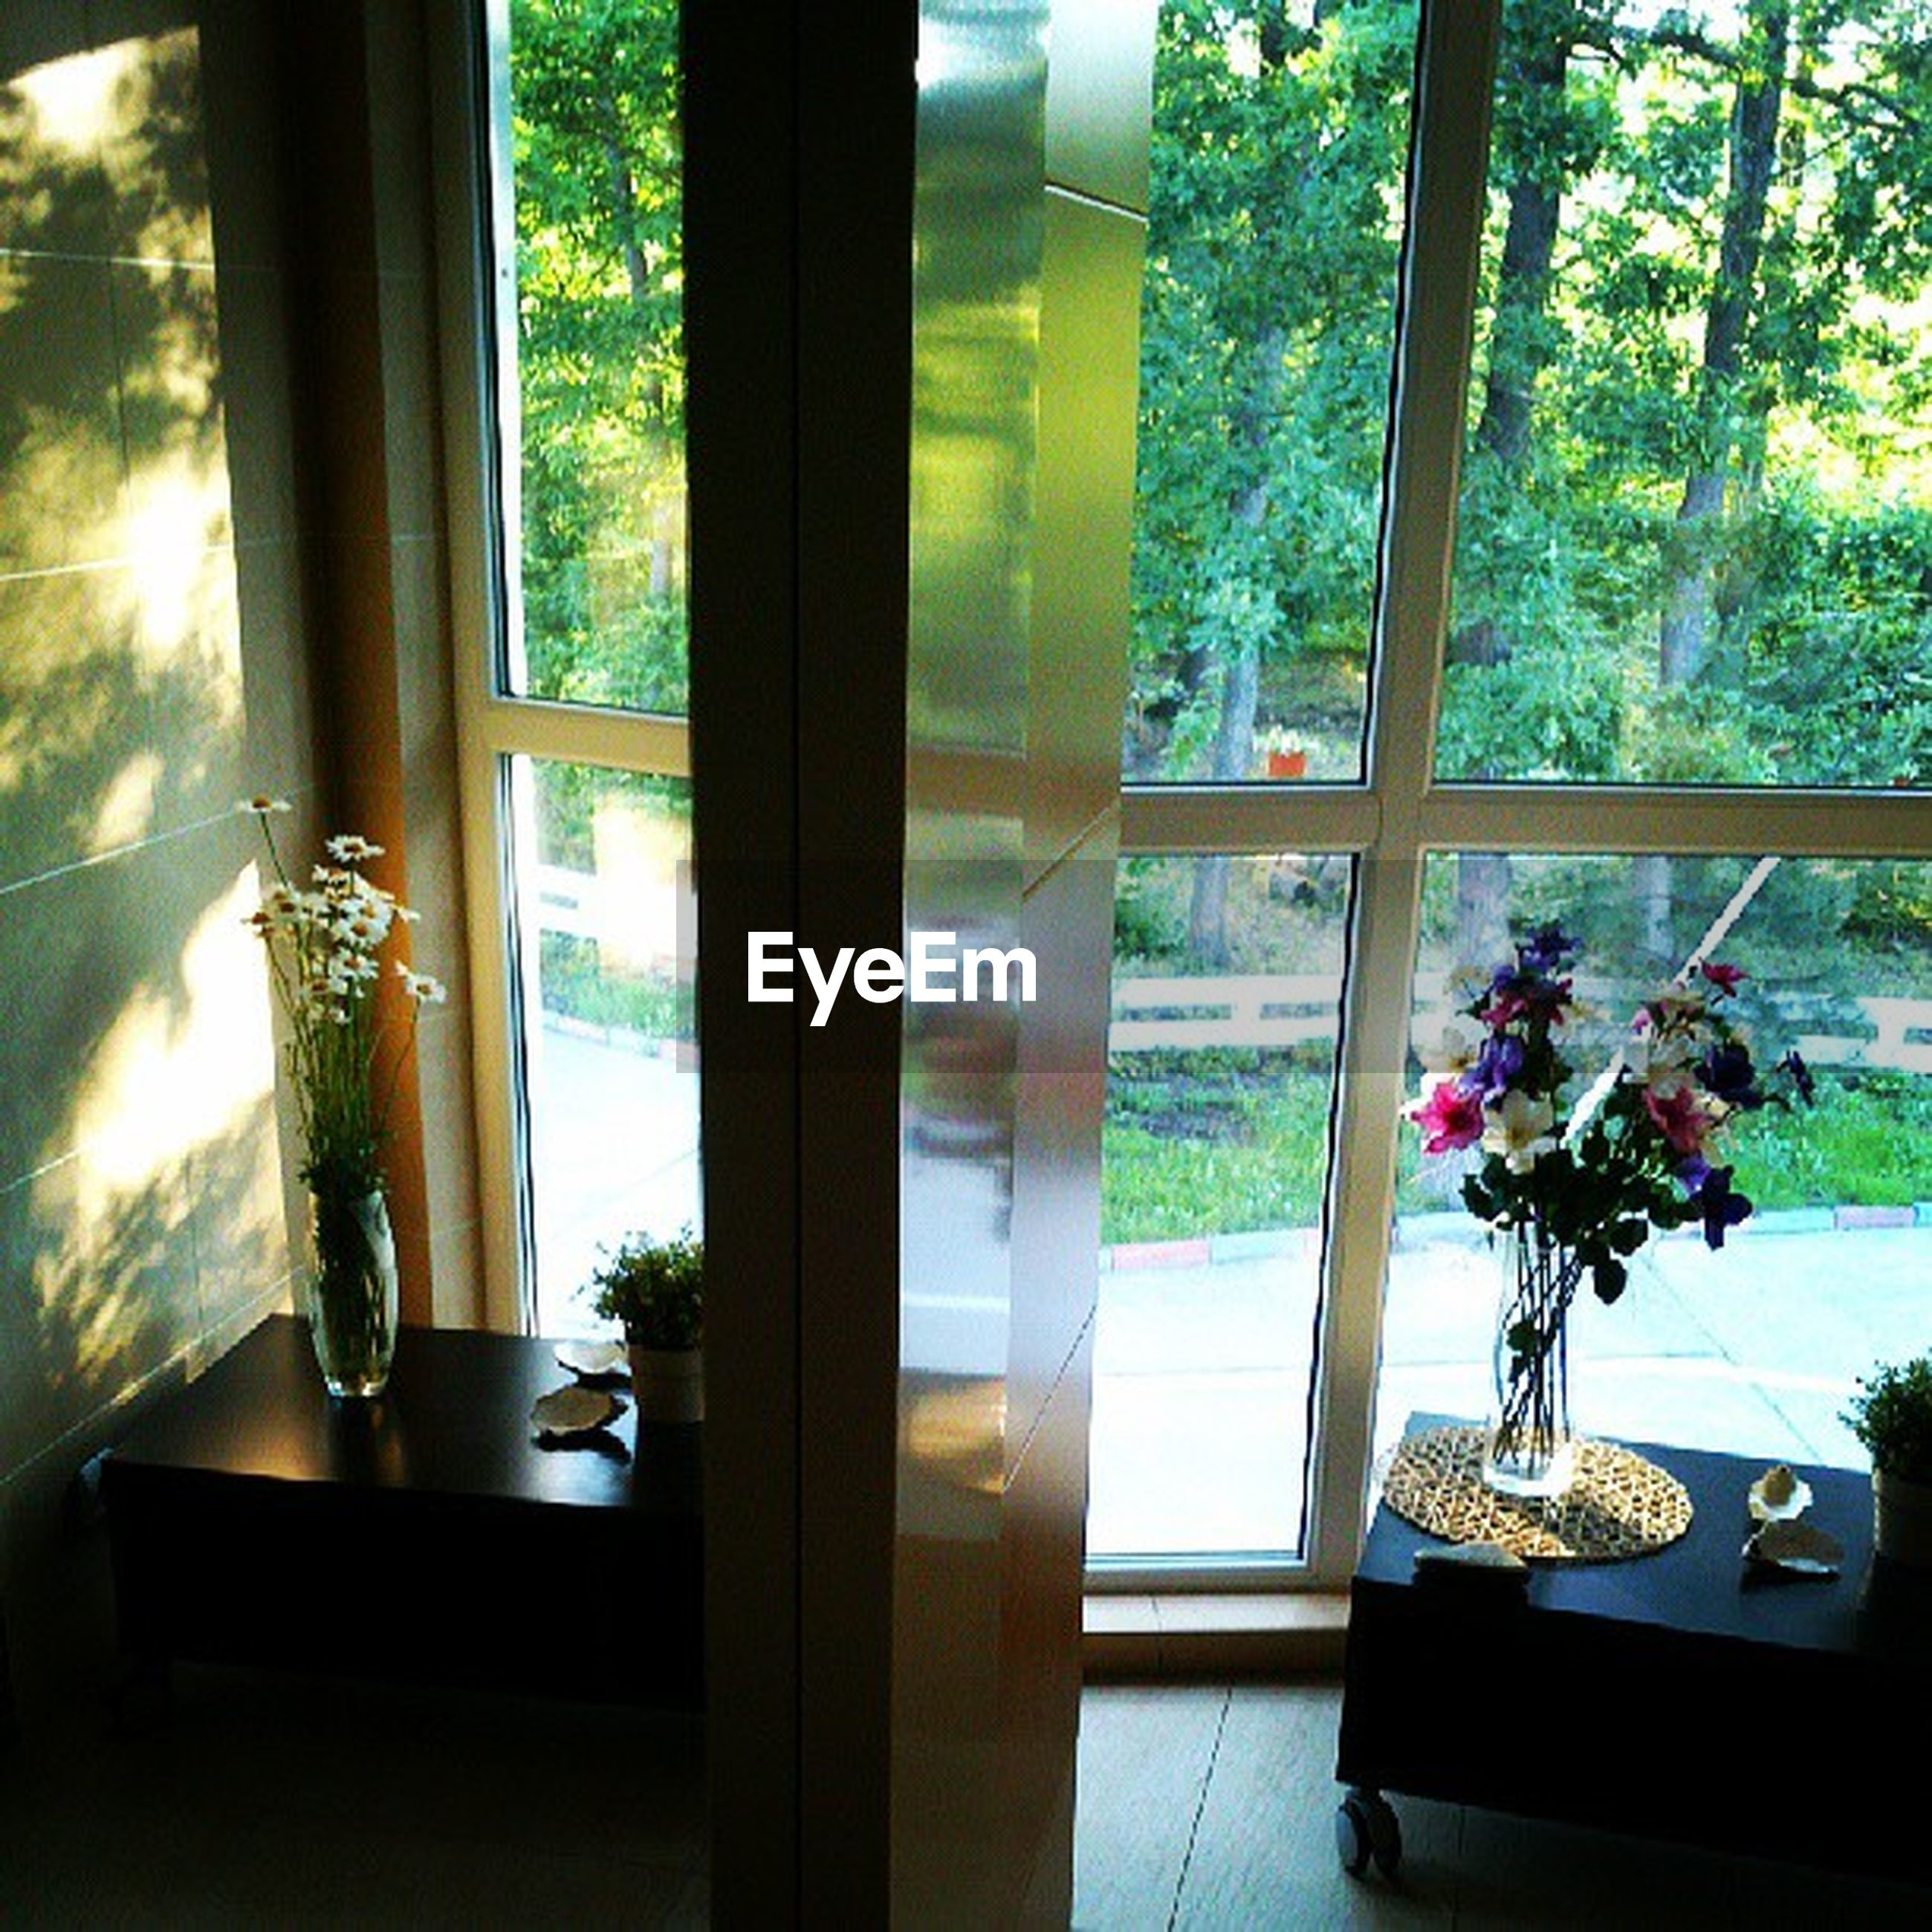 indoors, window, glass - material, transparent, table, tree, home interior, vase, potted plant, curtain, window sill, growth, flower, sunlight, plant, chair, glass, house, day, no people